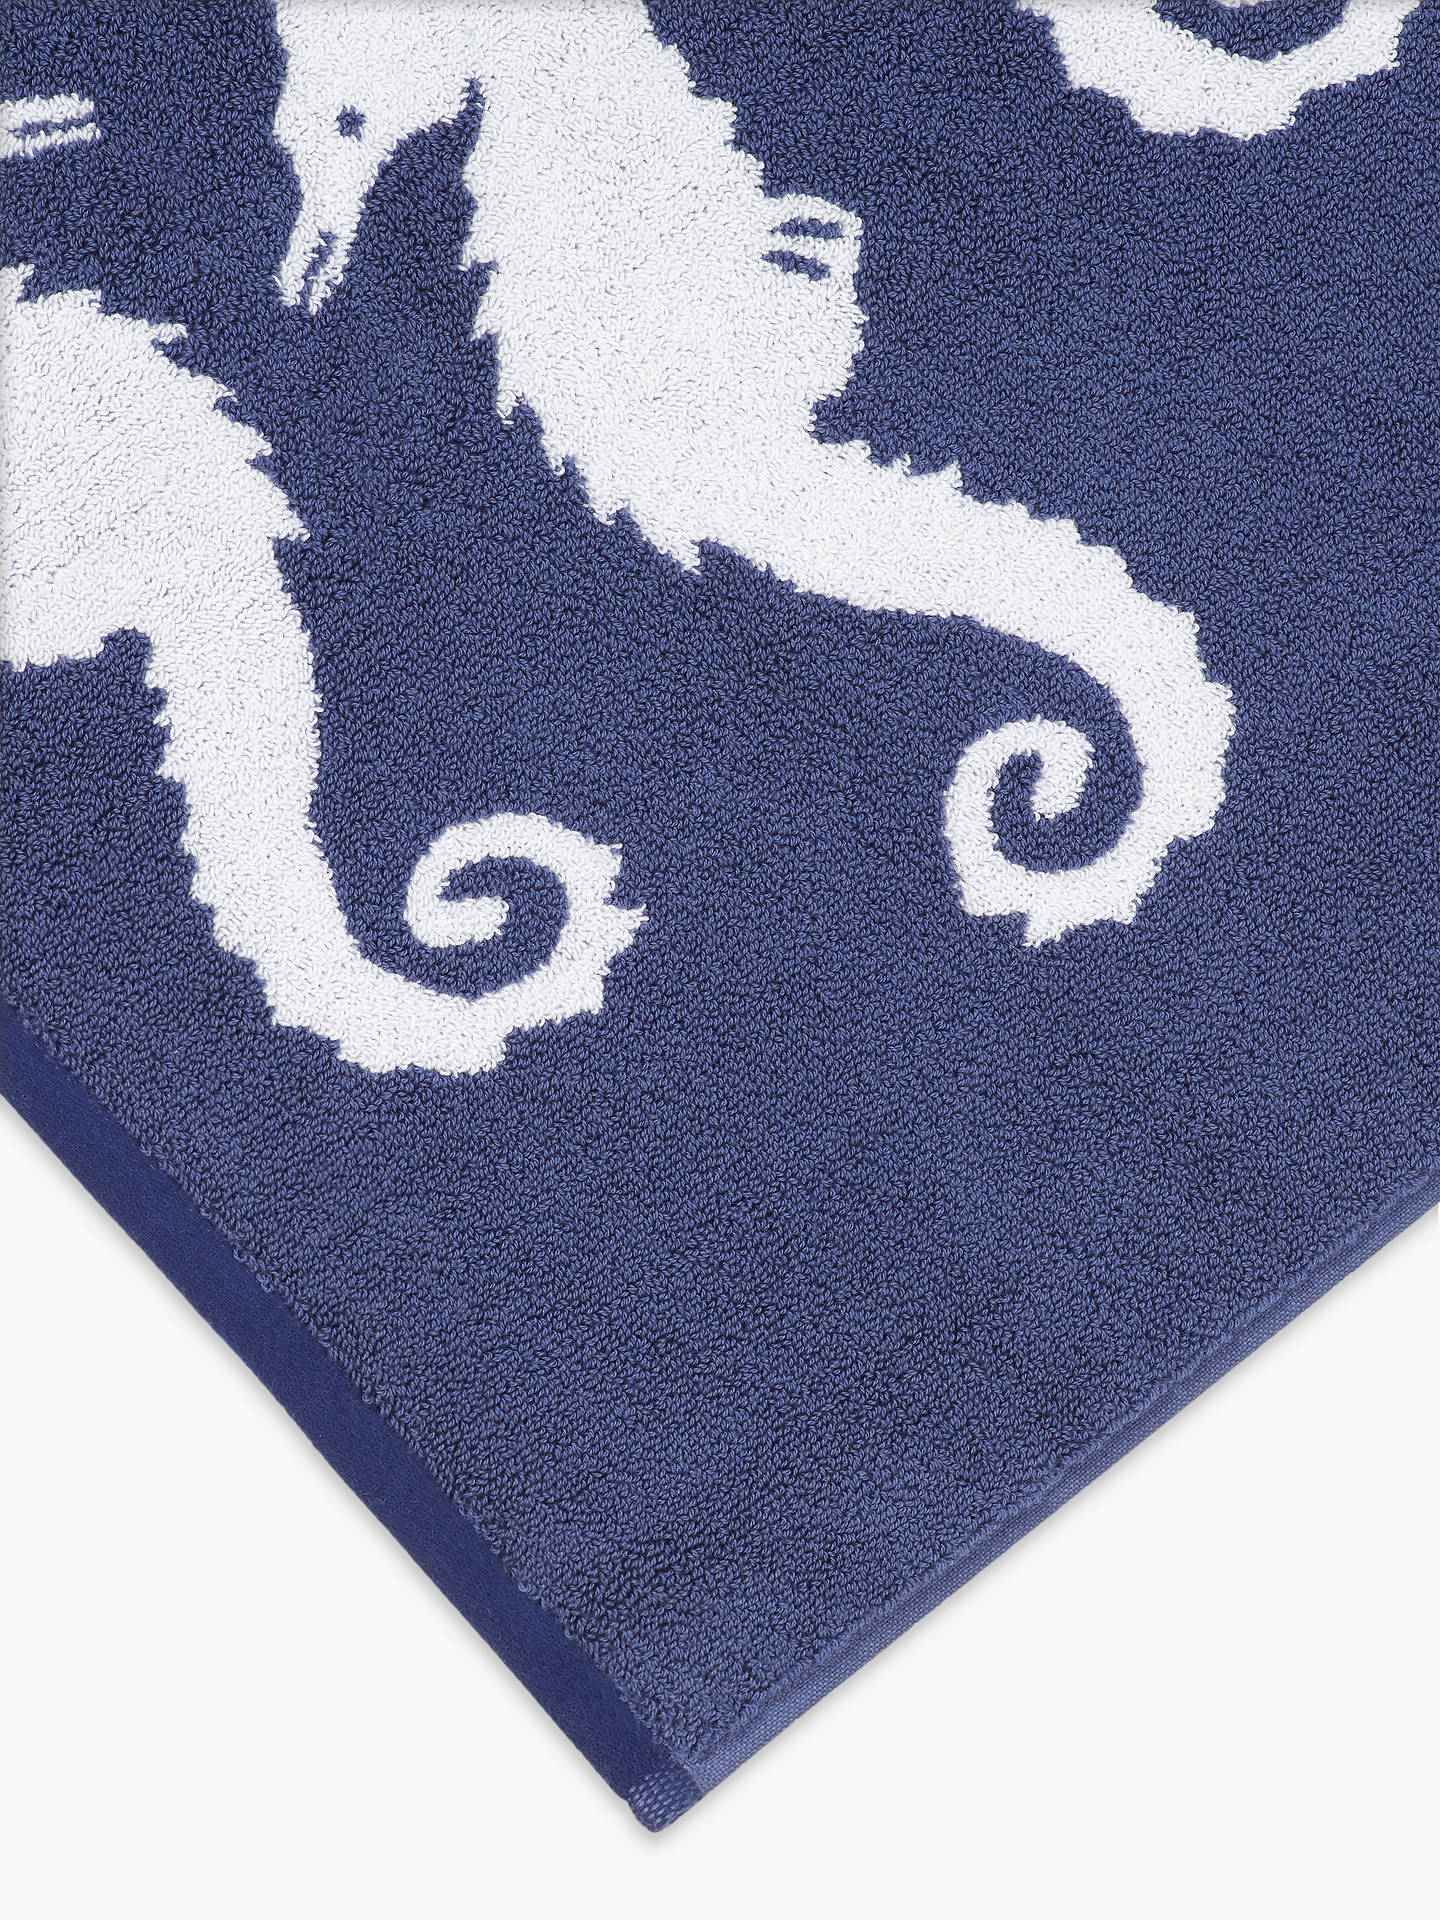 Buy John Lewis & Partners Coastal Seahorse Pacific Bath Mat Online at johnlewis.com